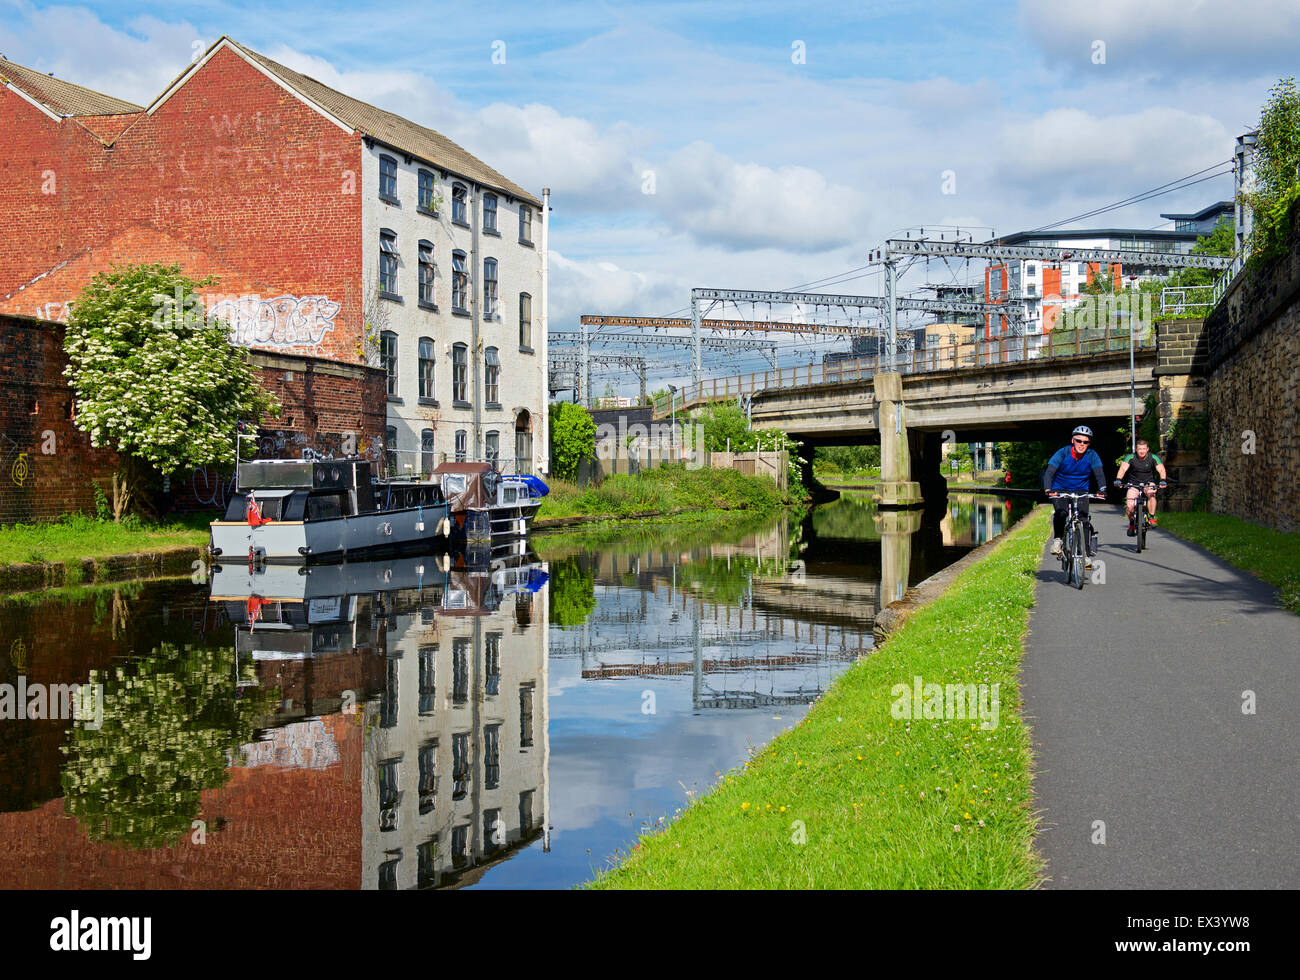 Cyclists on the towpath of the Leeds-Liverpool Canal, Leeds, West Yorkshire, england UK - Stock Image